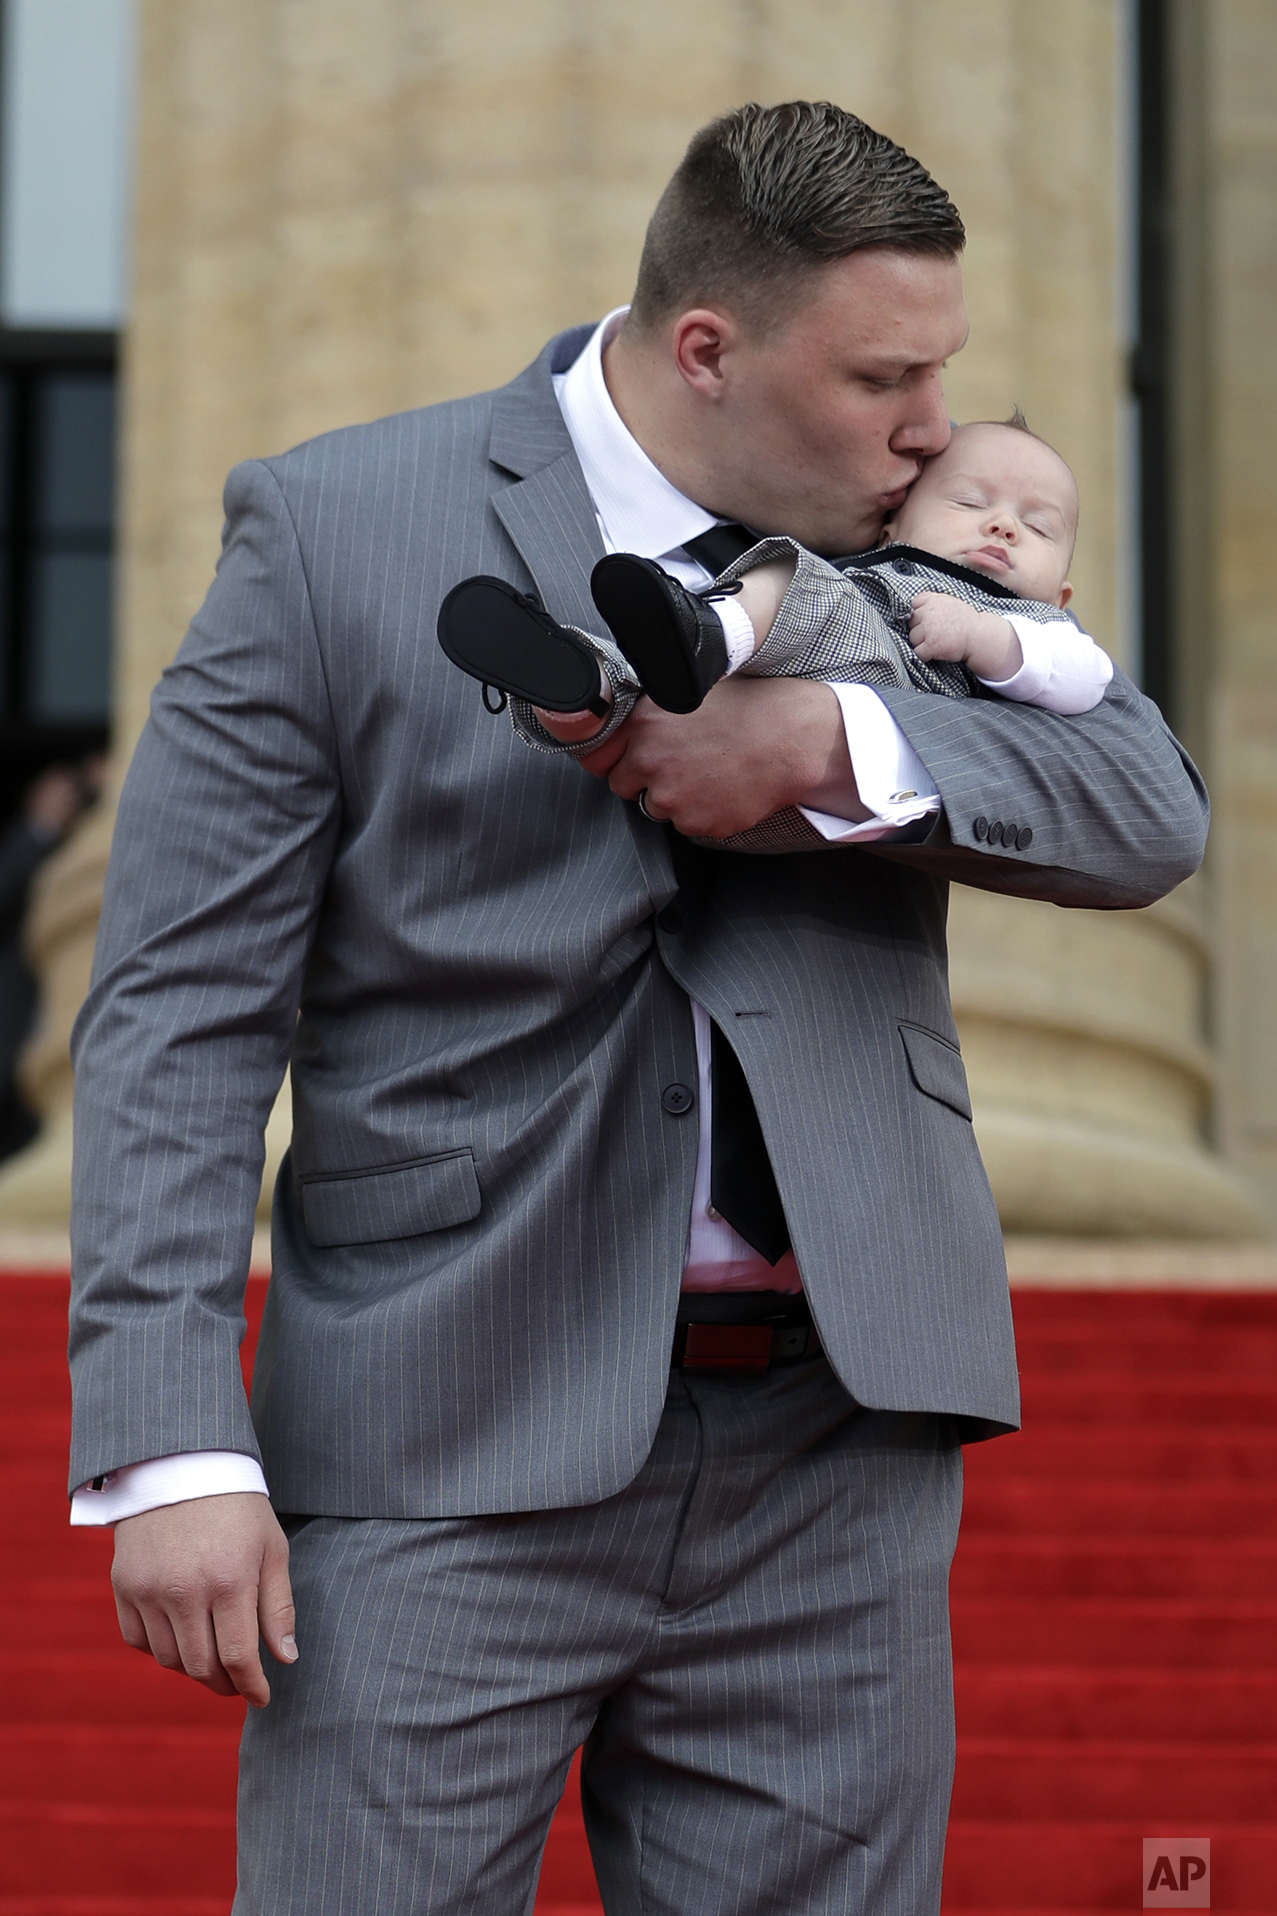 Utah's Garett Bolles arrives with his son Kingston for the first round of the 2017 NFL football draft, Thursday, April 27, 2017, in Philadelphia. (AP Photo/Julio Cortez)